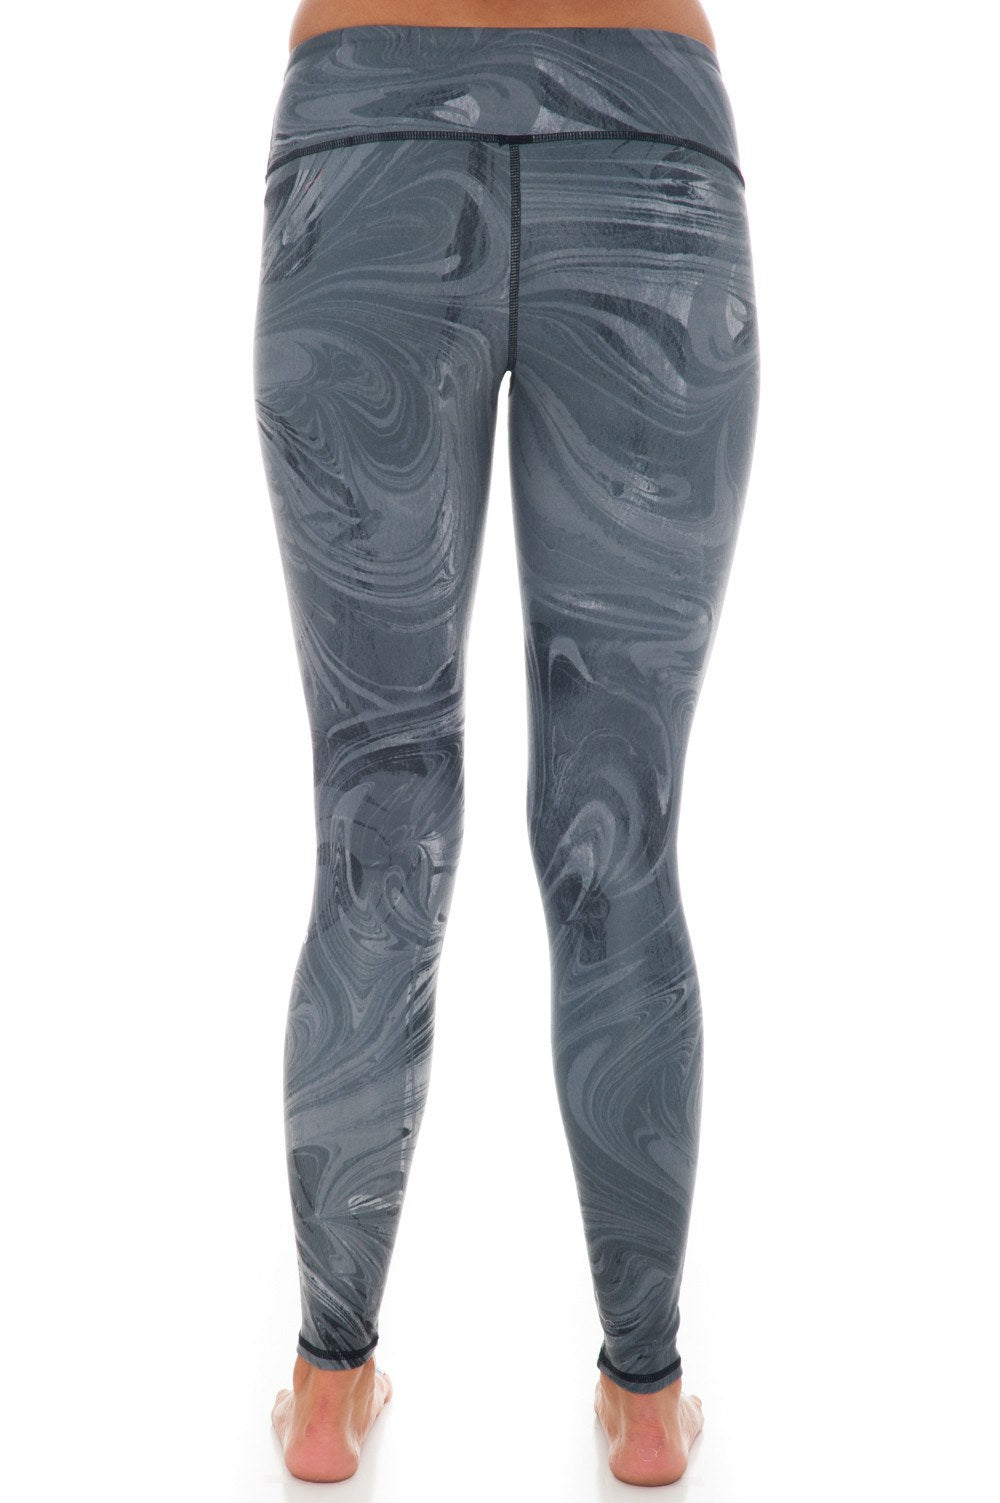 Legging - Airbrush - 3